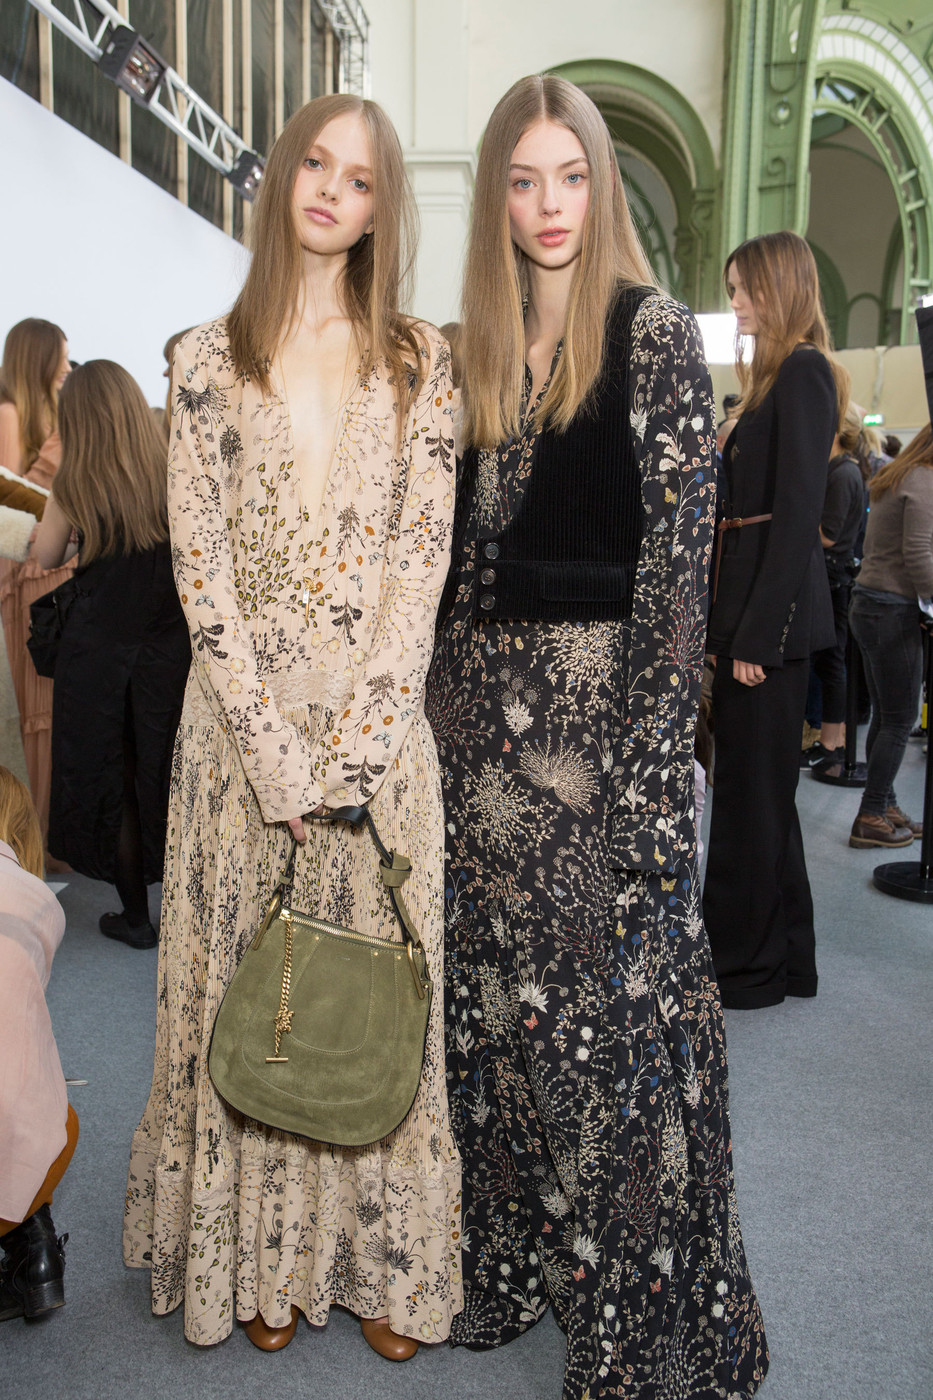 Chloe+Fall+2015+Backstage+6WVyDEM_1e9x.jpg